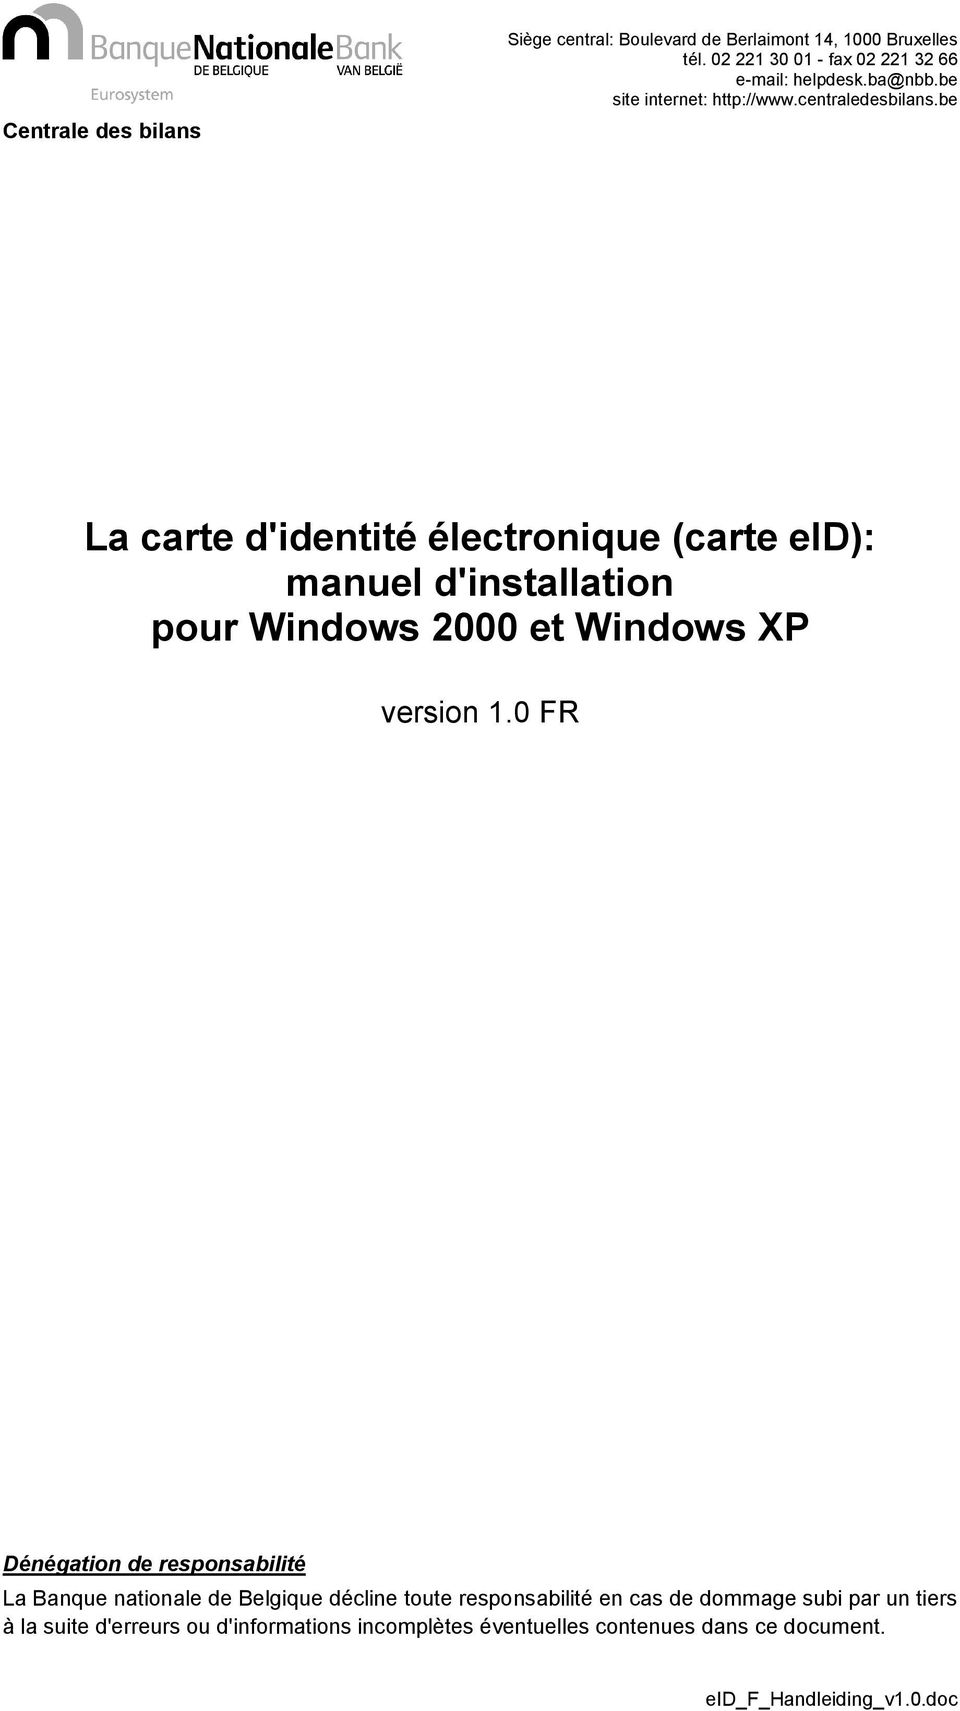 be La carte d'identité électronique (carte eid): manuel d'installation pour Windows 2000 et Windows XP version 1.